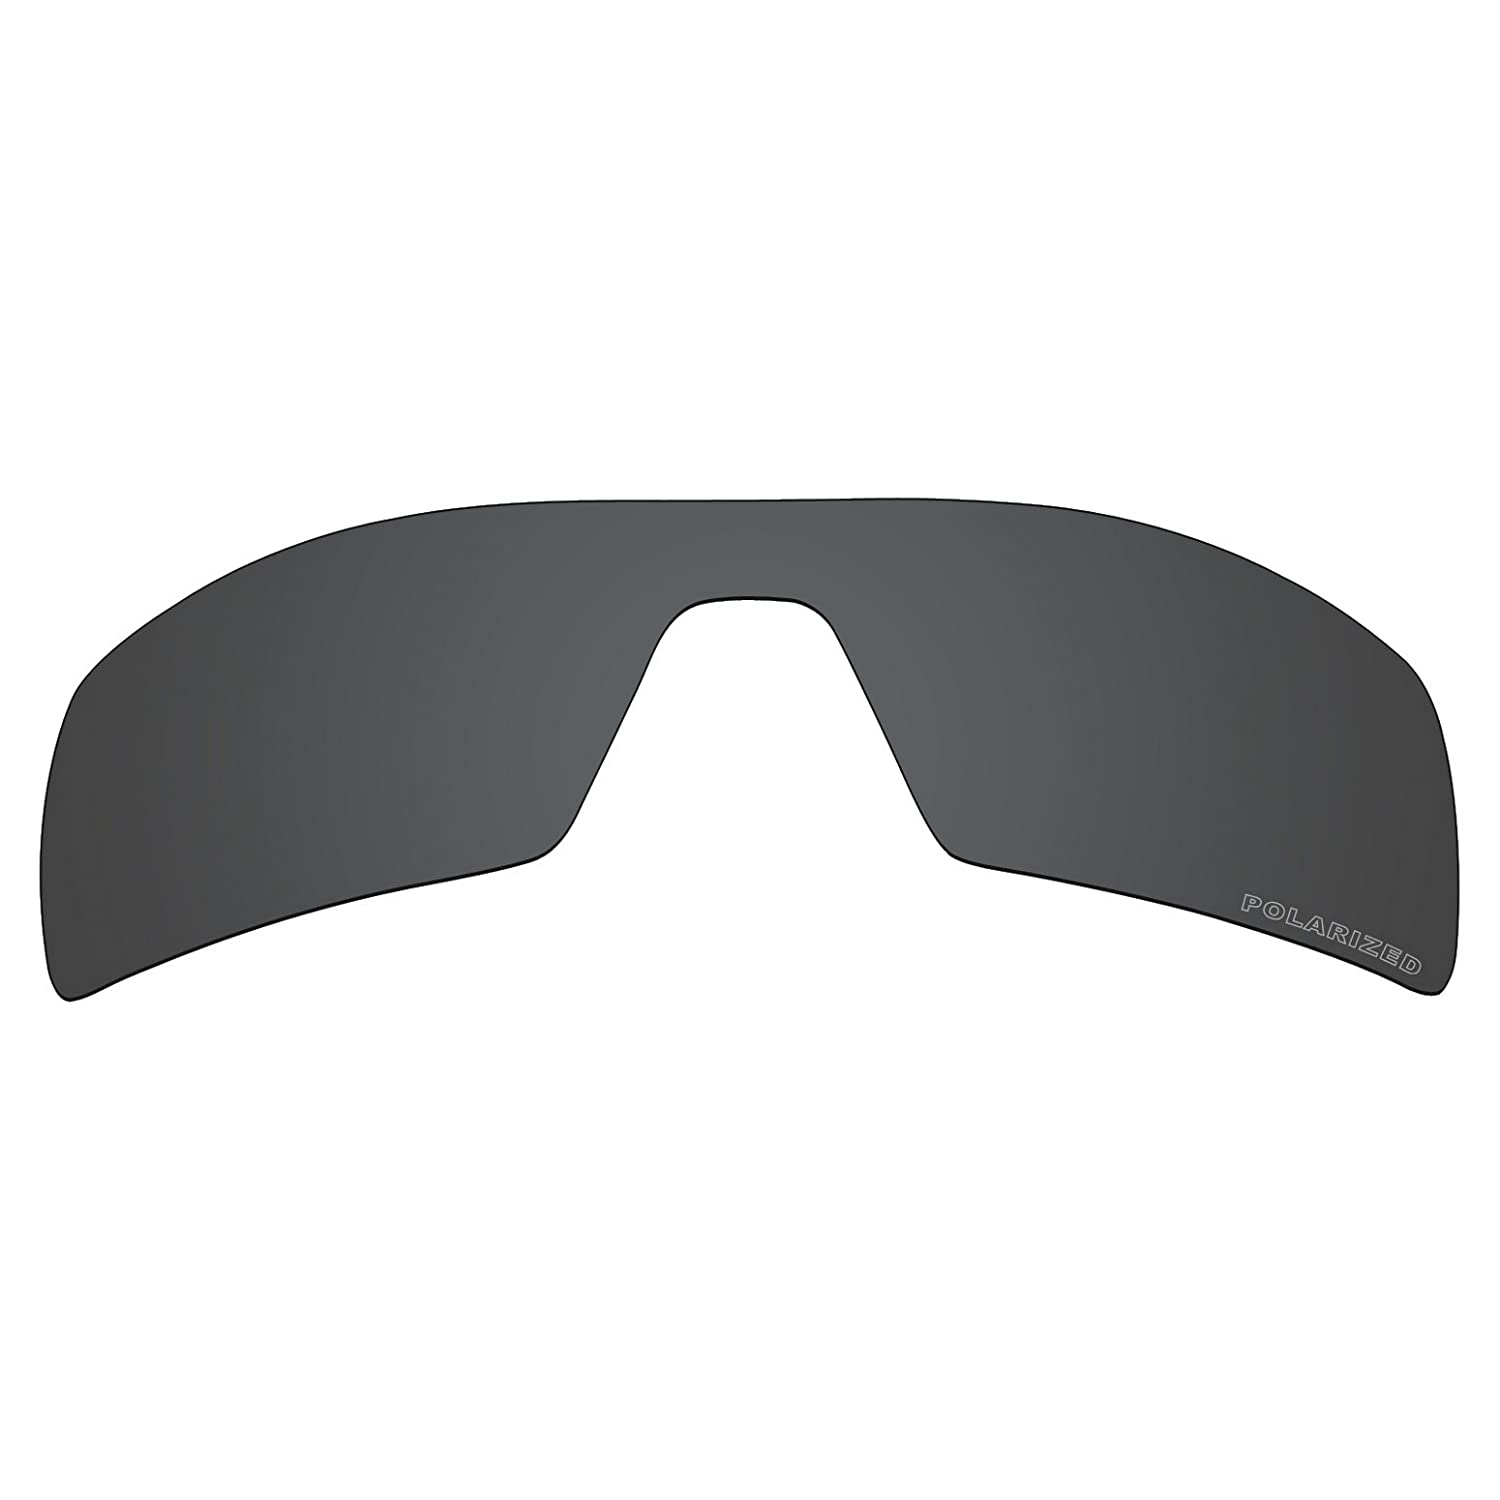 23fb724fb2 Amazon.com  Tintart Performance Lenses Compatible with Oakley Oil Rig  Polarized Etched-Carbon Black  Clothing